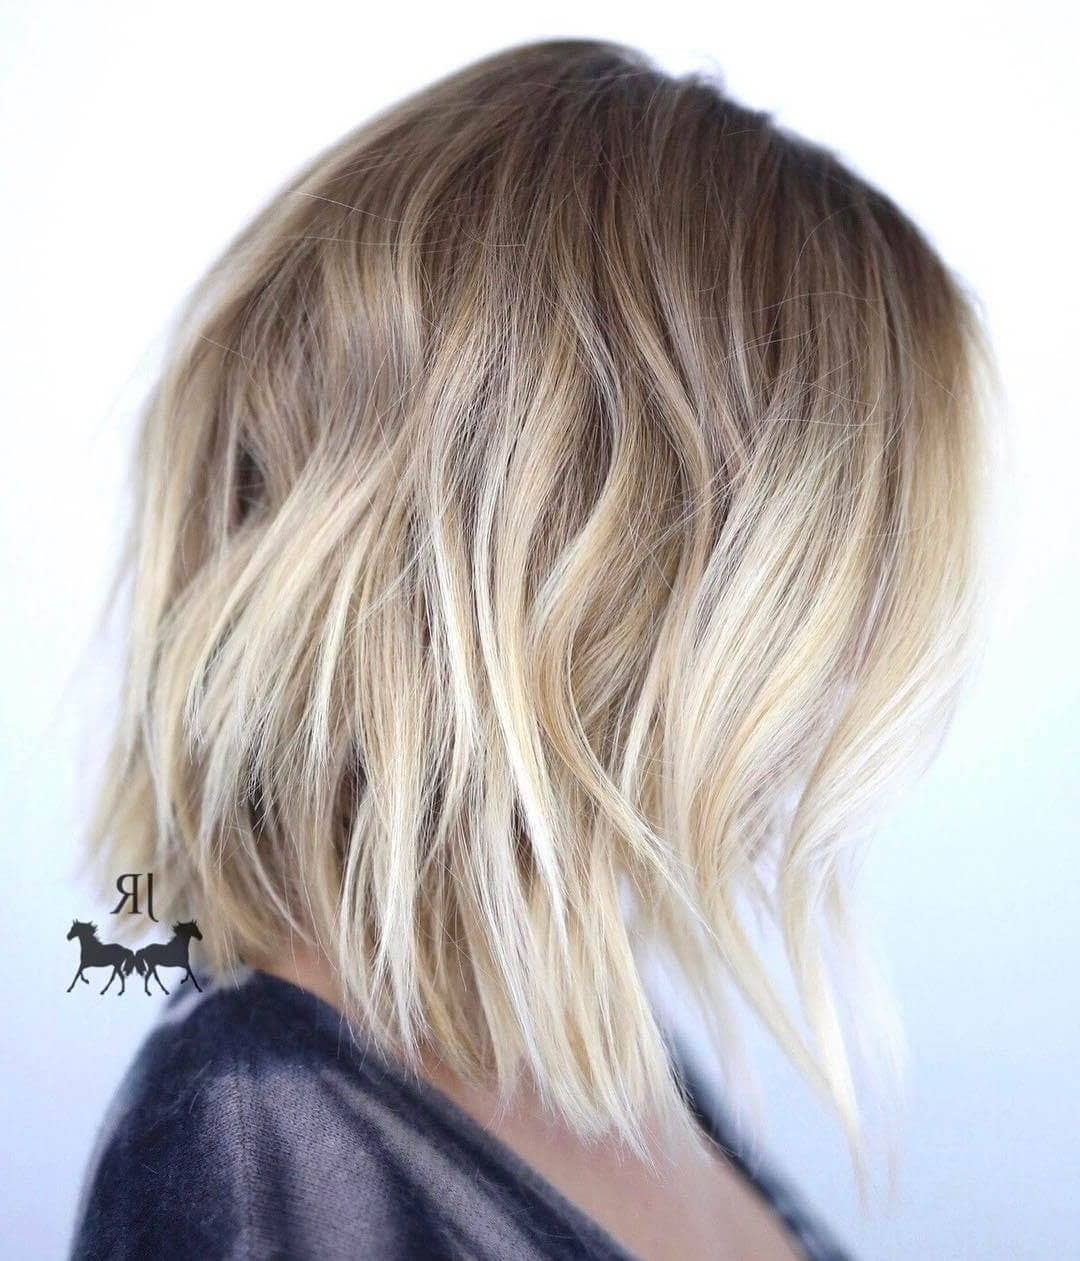 50 Fresh Short Blonde Hair Ideas To Update Your Style In 2018 In White Blonde Curly Layered Bob Hairstyles (View 6 of 25)